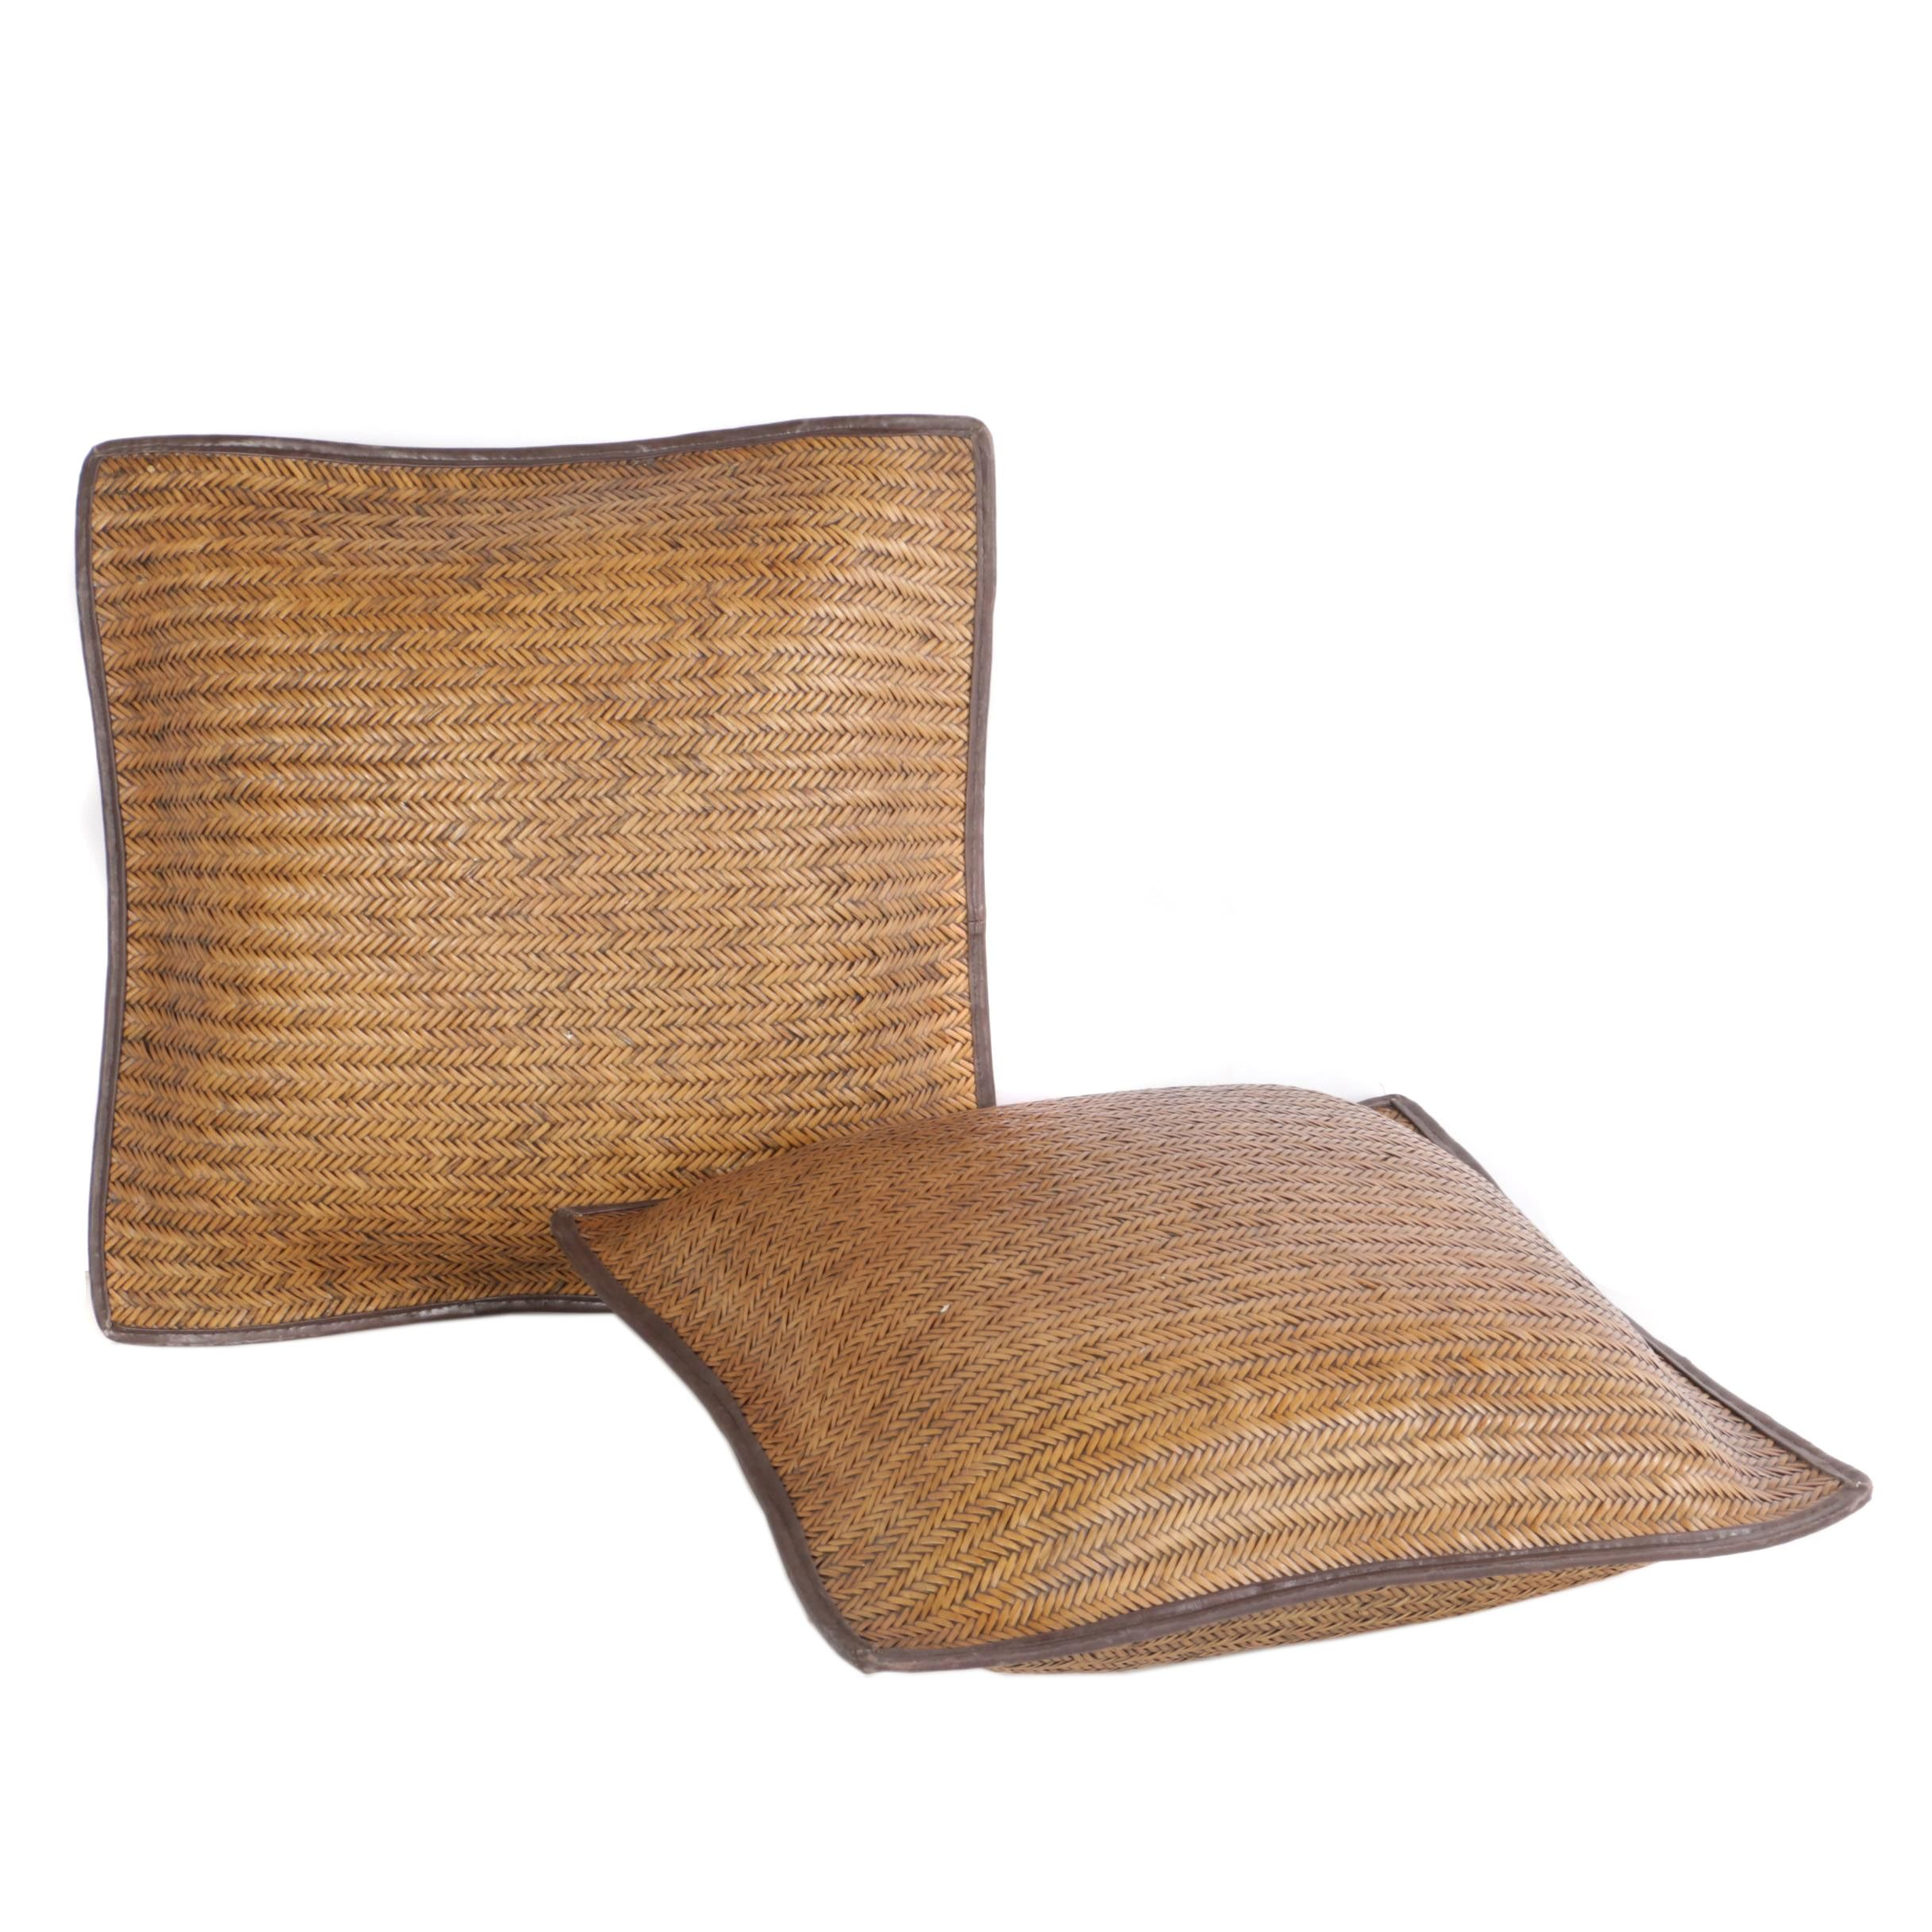 Brown Oversized Woven Cushion Pillows